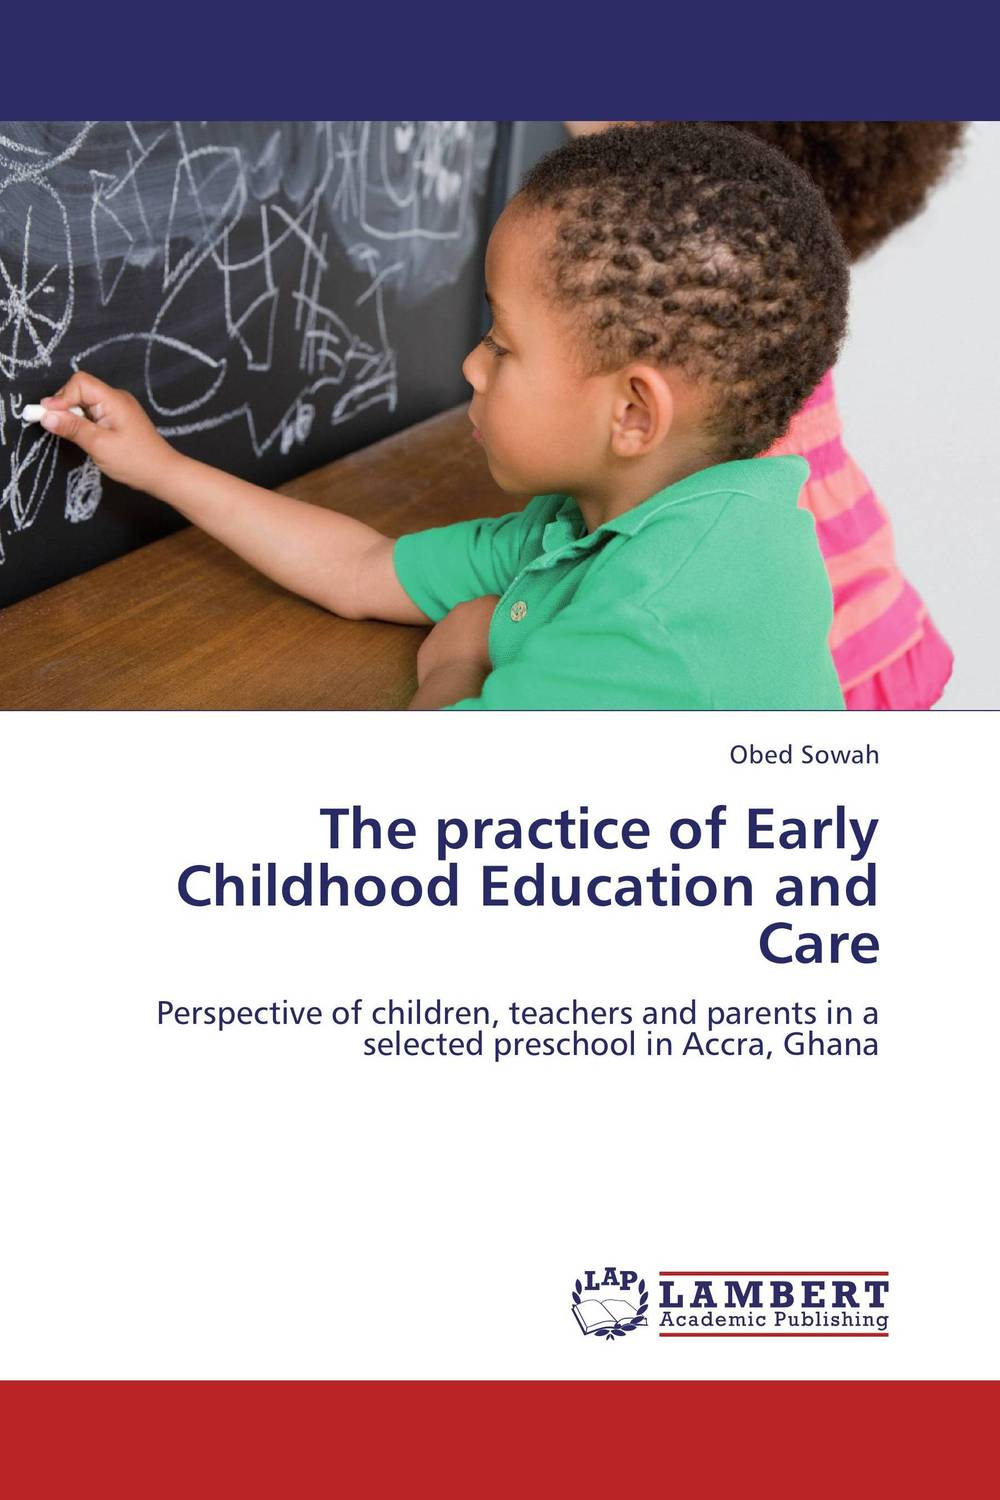 The practice of Early Childhood Education and Care manuscript found in accra